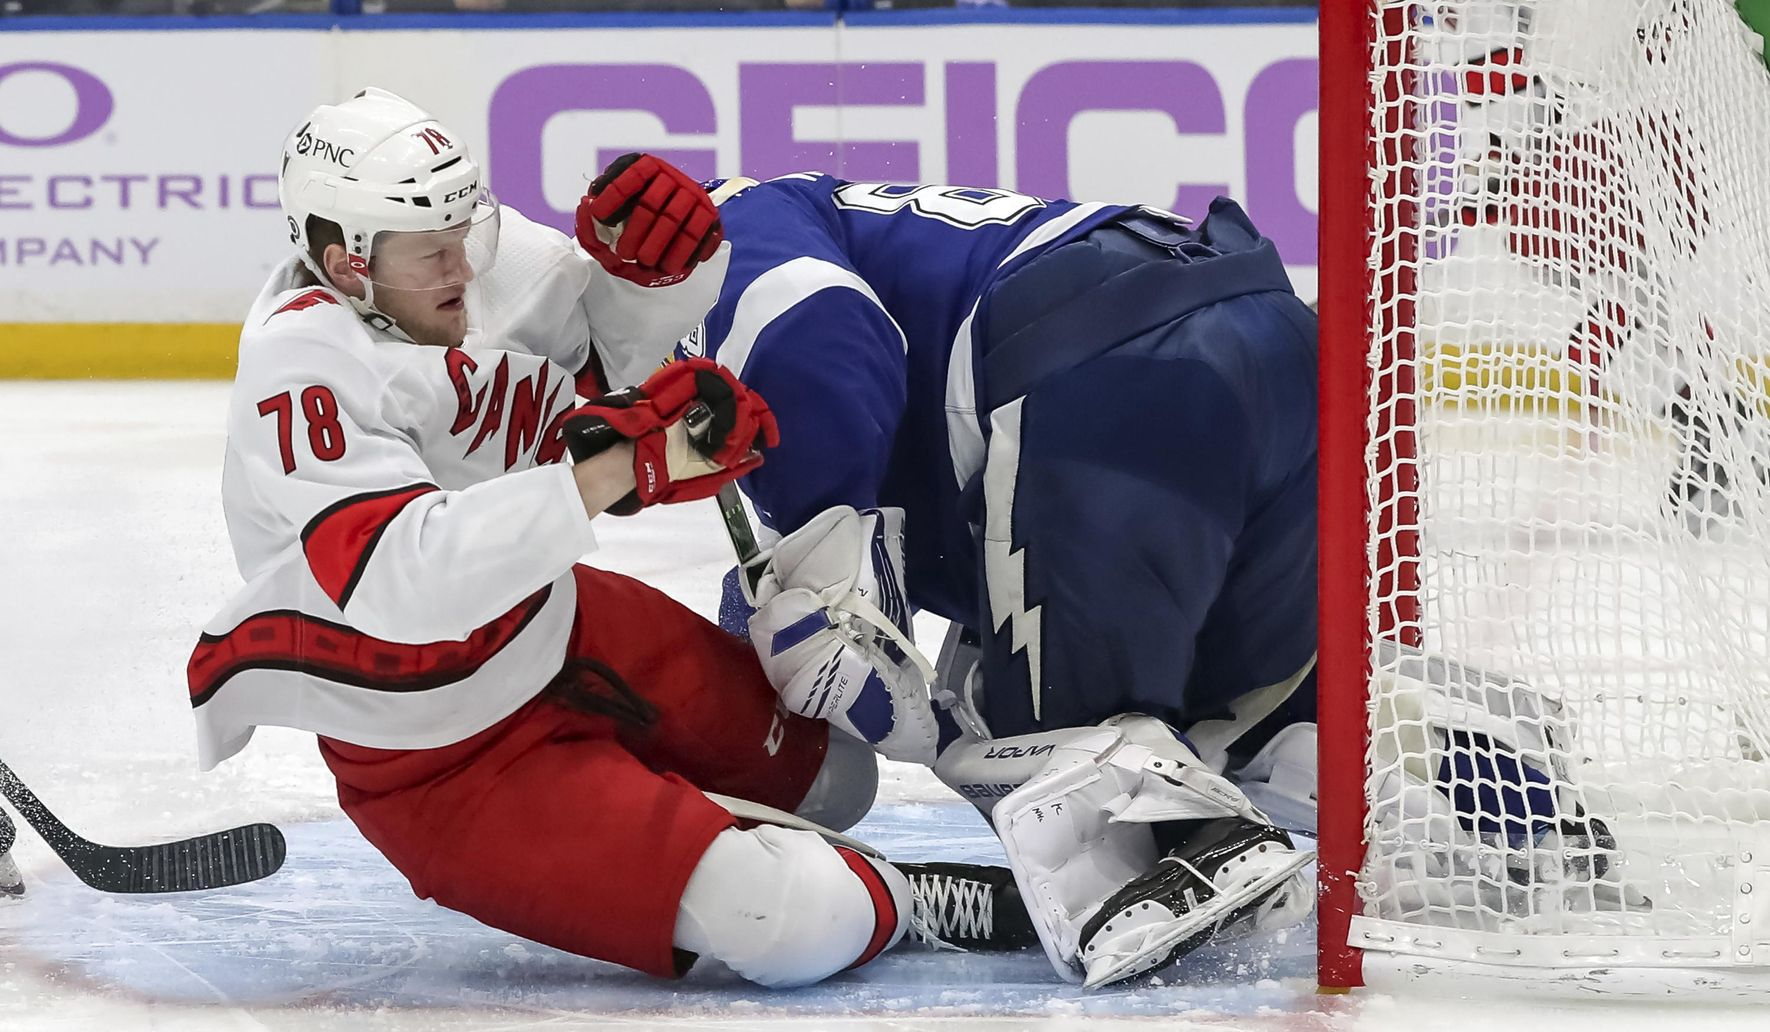 Hurricanes_lightning_hockey_49689_c0-125-3000-1874_s1770x1032